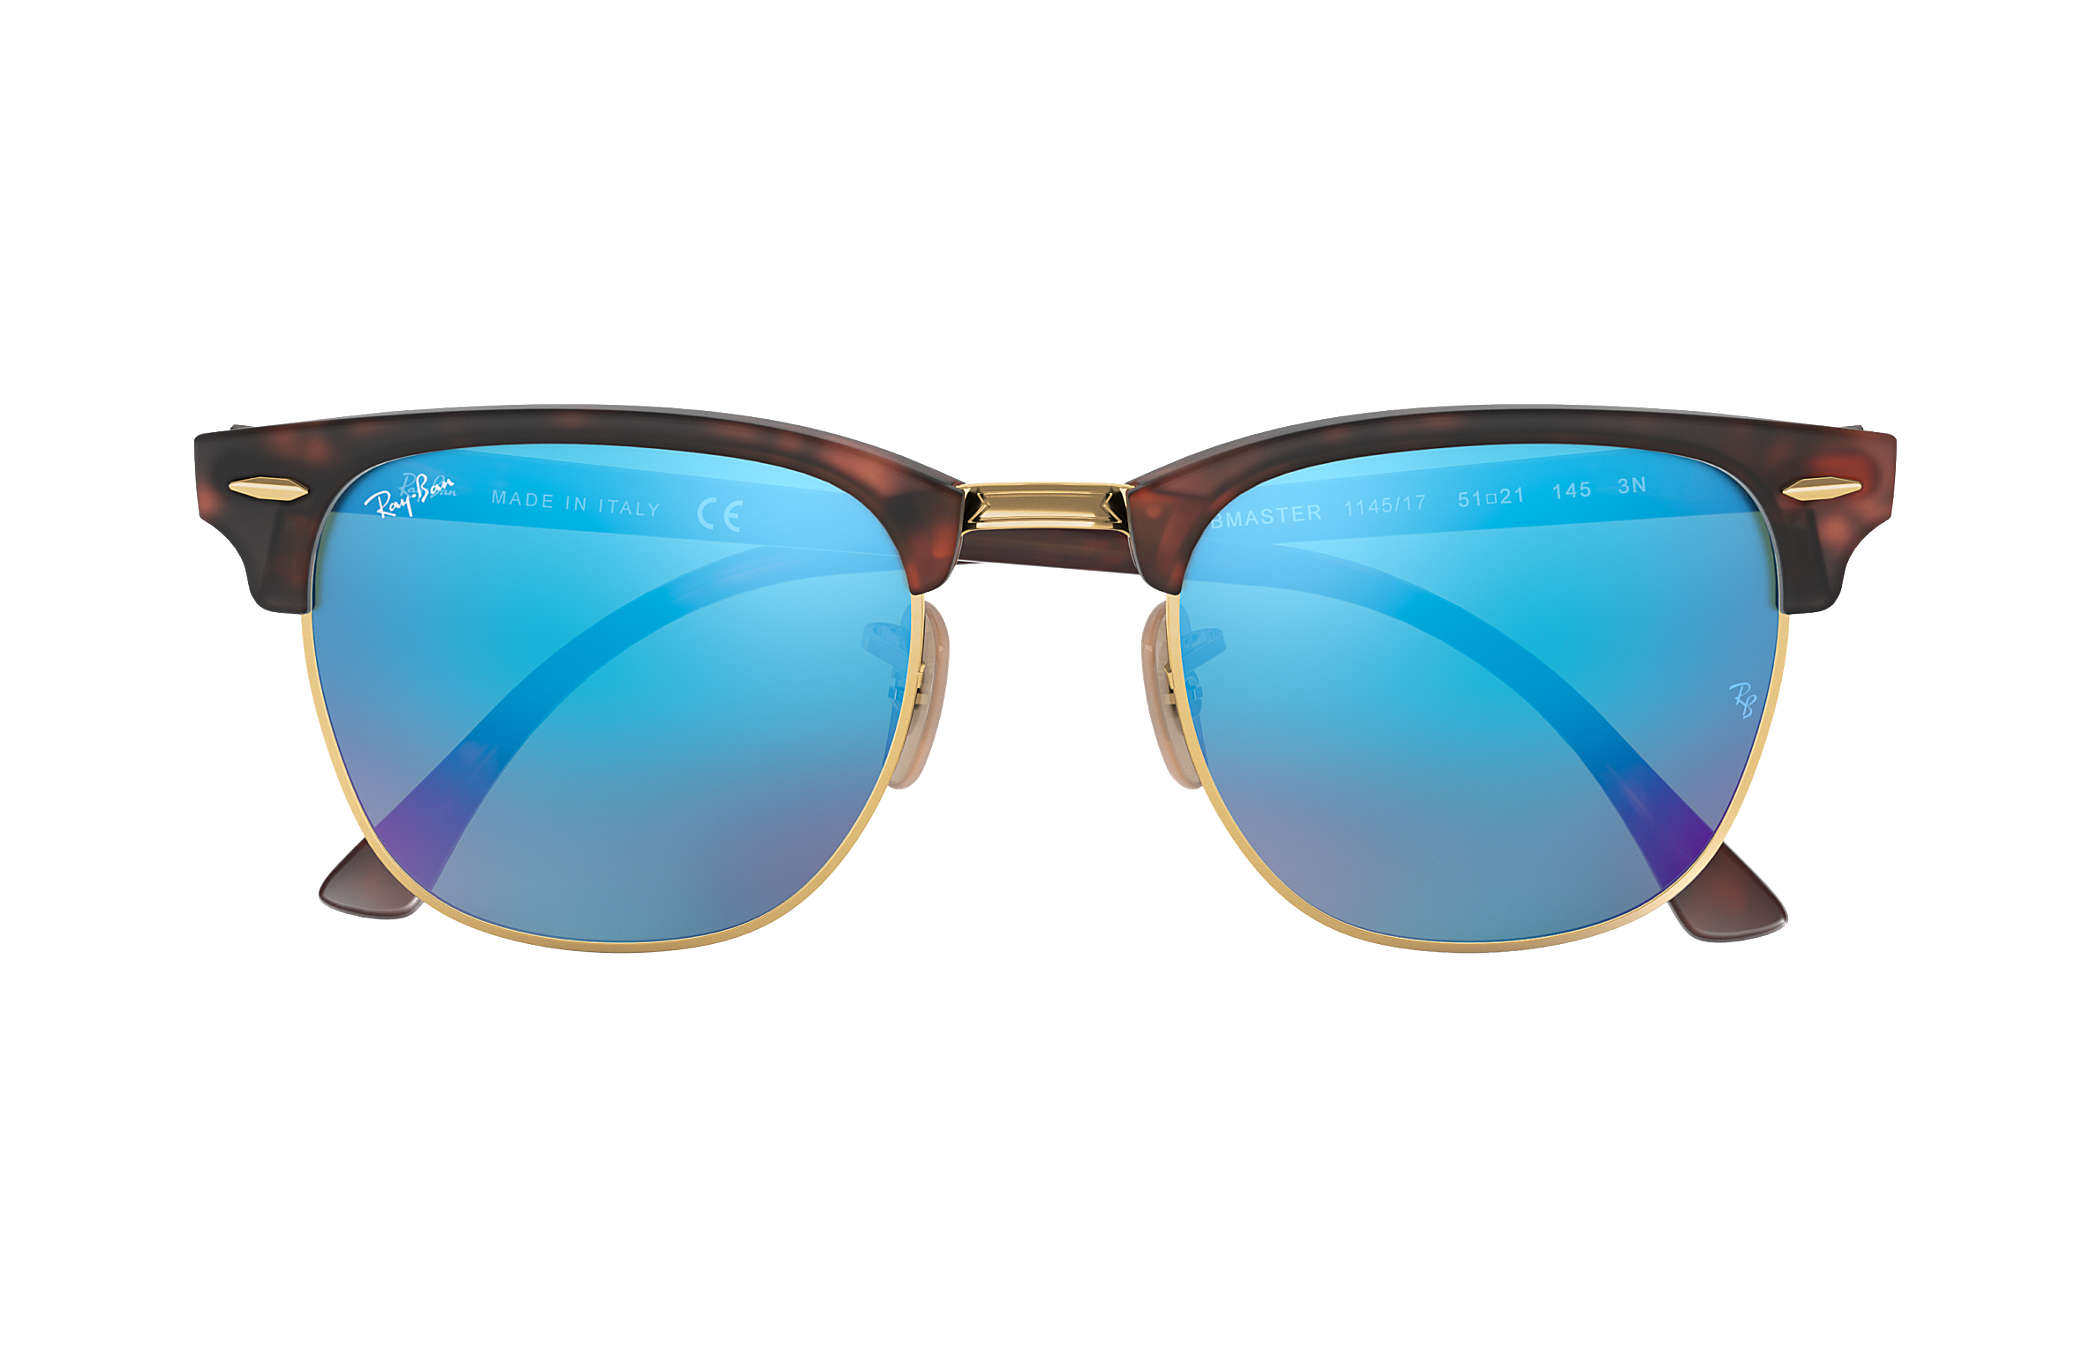 a2e8a74ac Ray-Ban Clubmaster Flash Lenses RB3016 Tortoise - Acetate - Blue ...